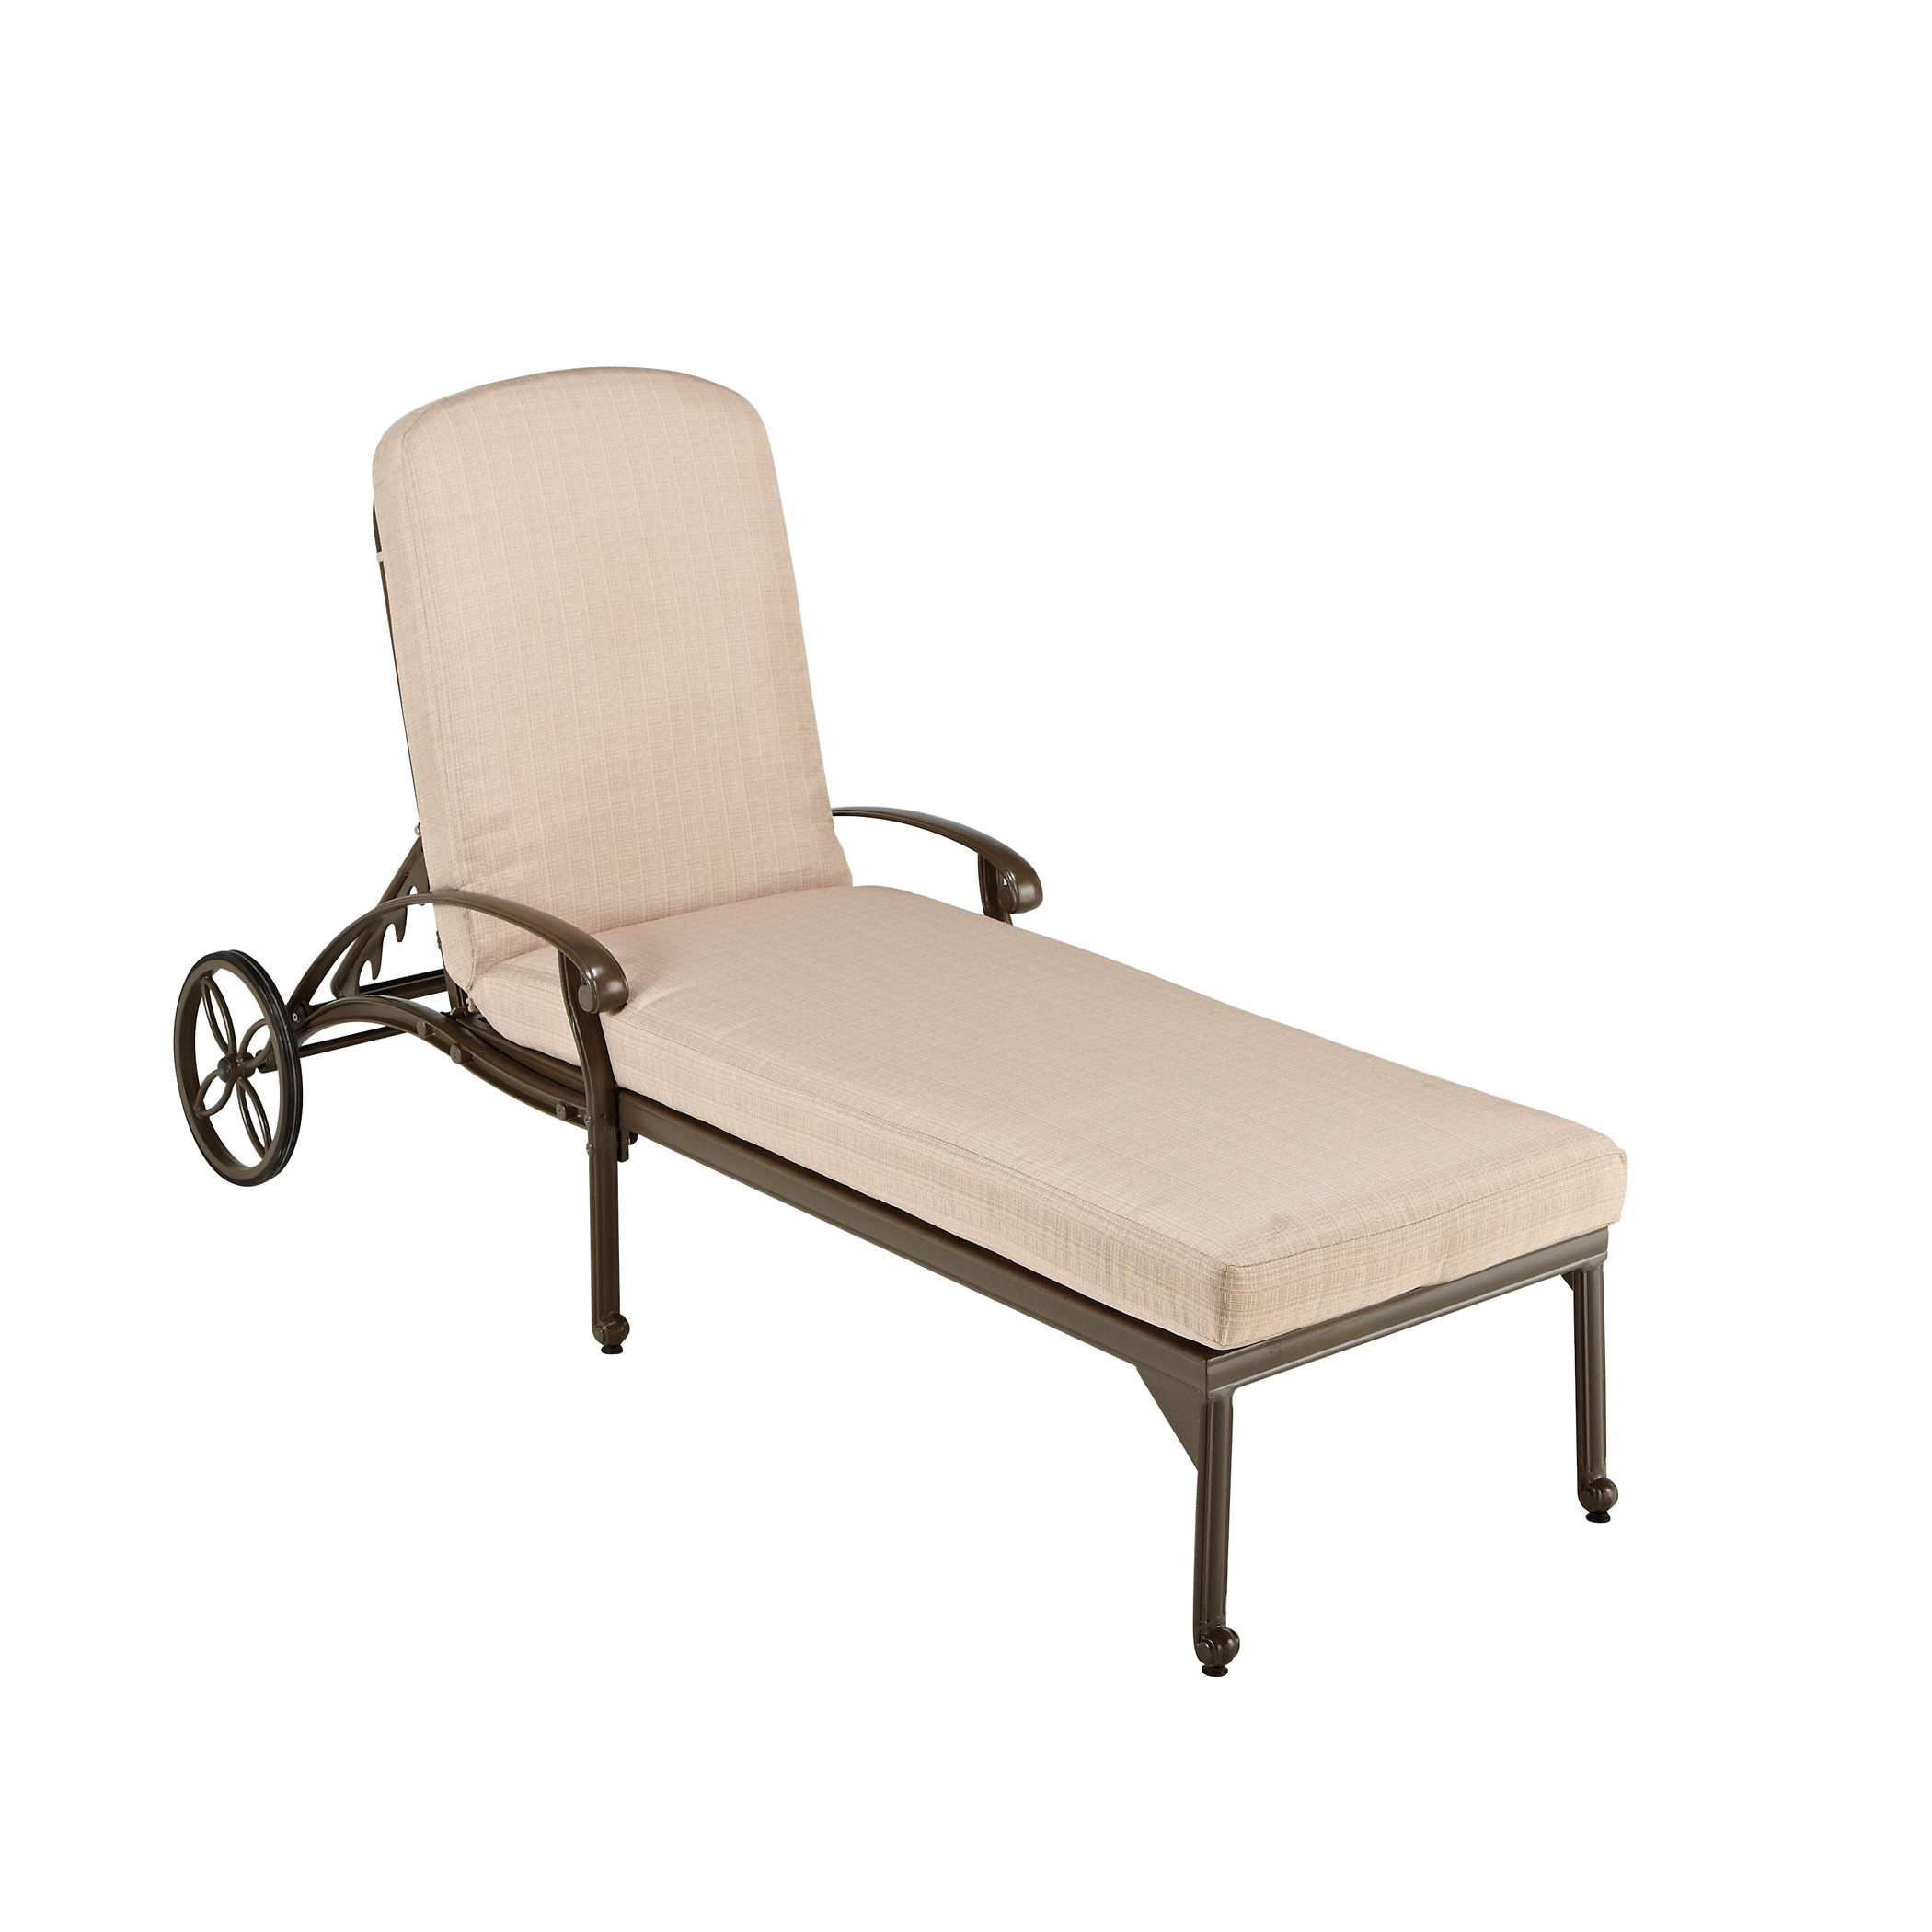 lounge chairs home depot thomas the tank engine desk and chair styles floral blossom taupe chaise